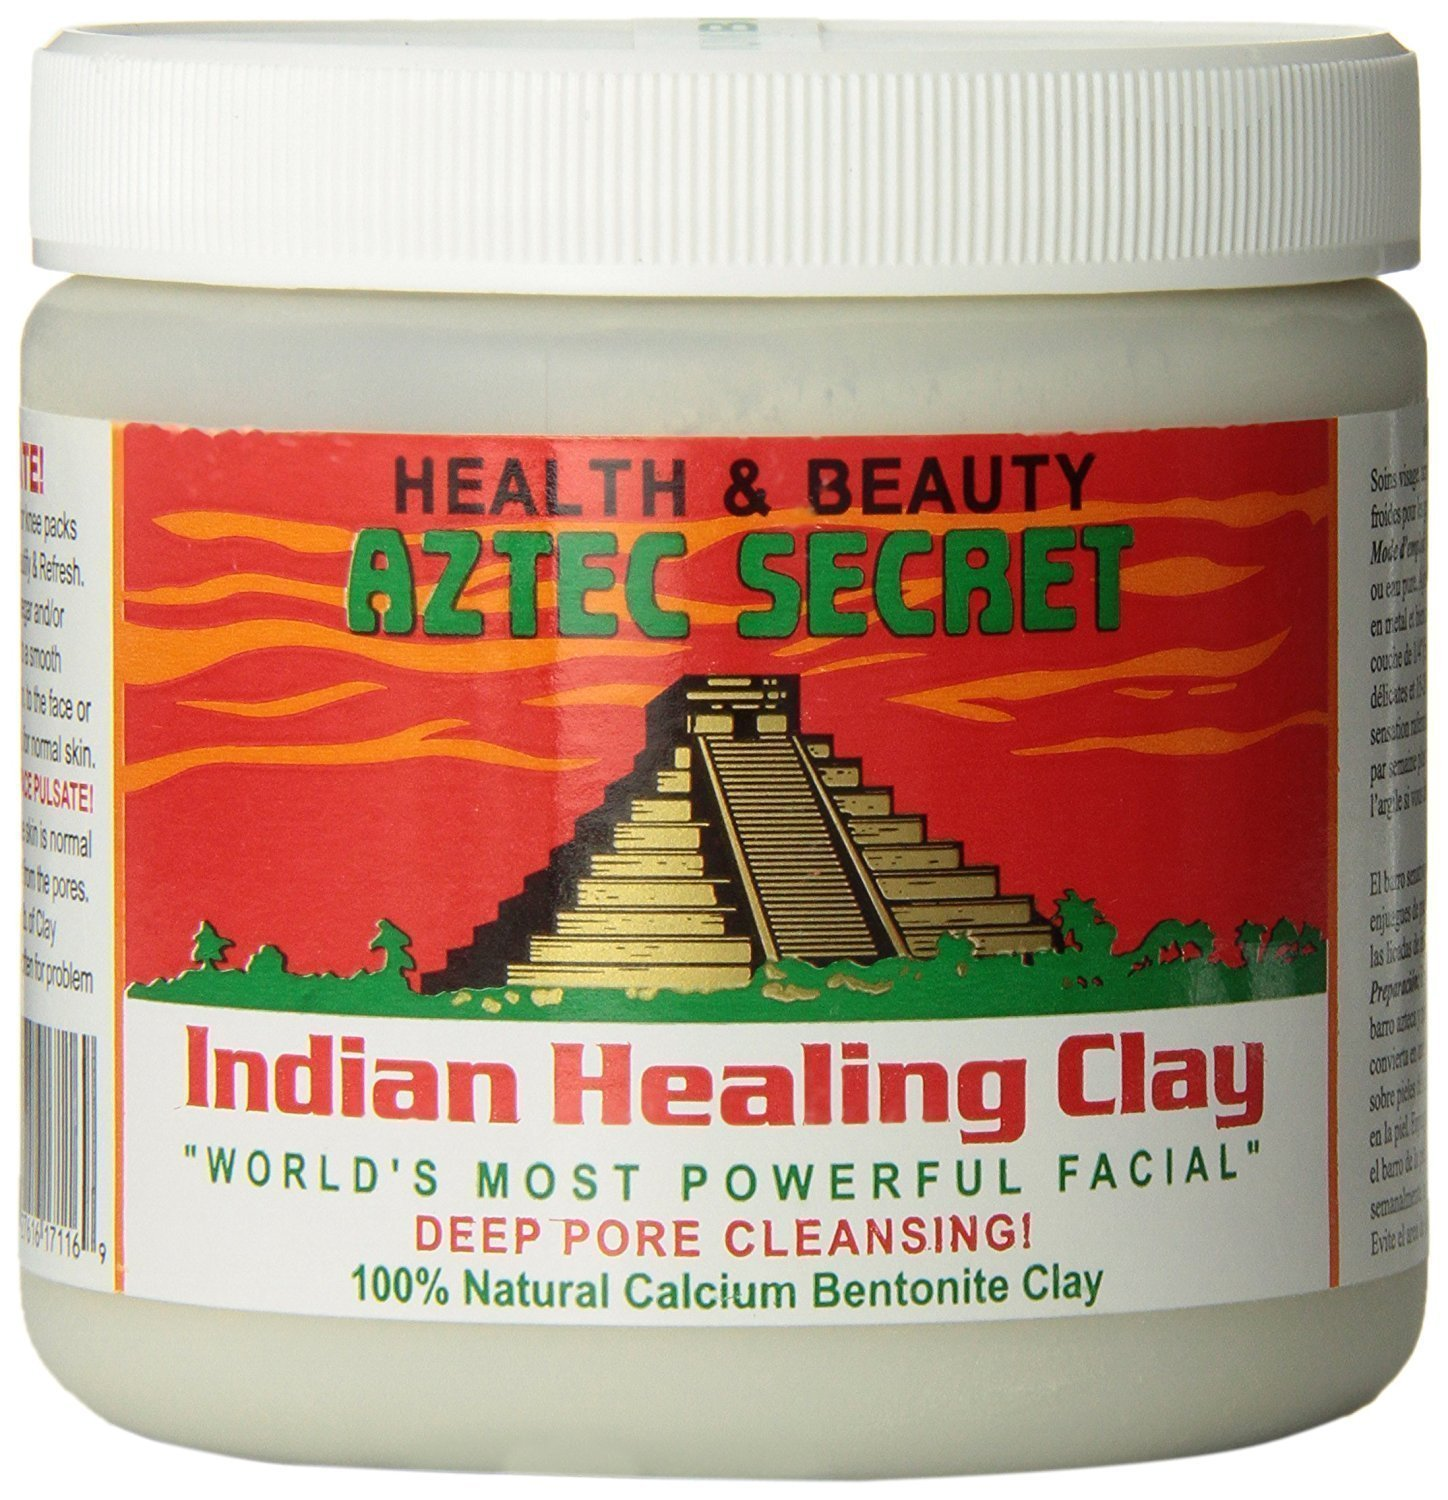 Aztec Secret   Indian Healing Clay   1 Lb. | Deep Pore Cleansing Facial & Healing Body Mask | The Original 100 Percents Natural Calcium Bentonite Clay by Aztec Secret